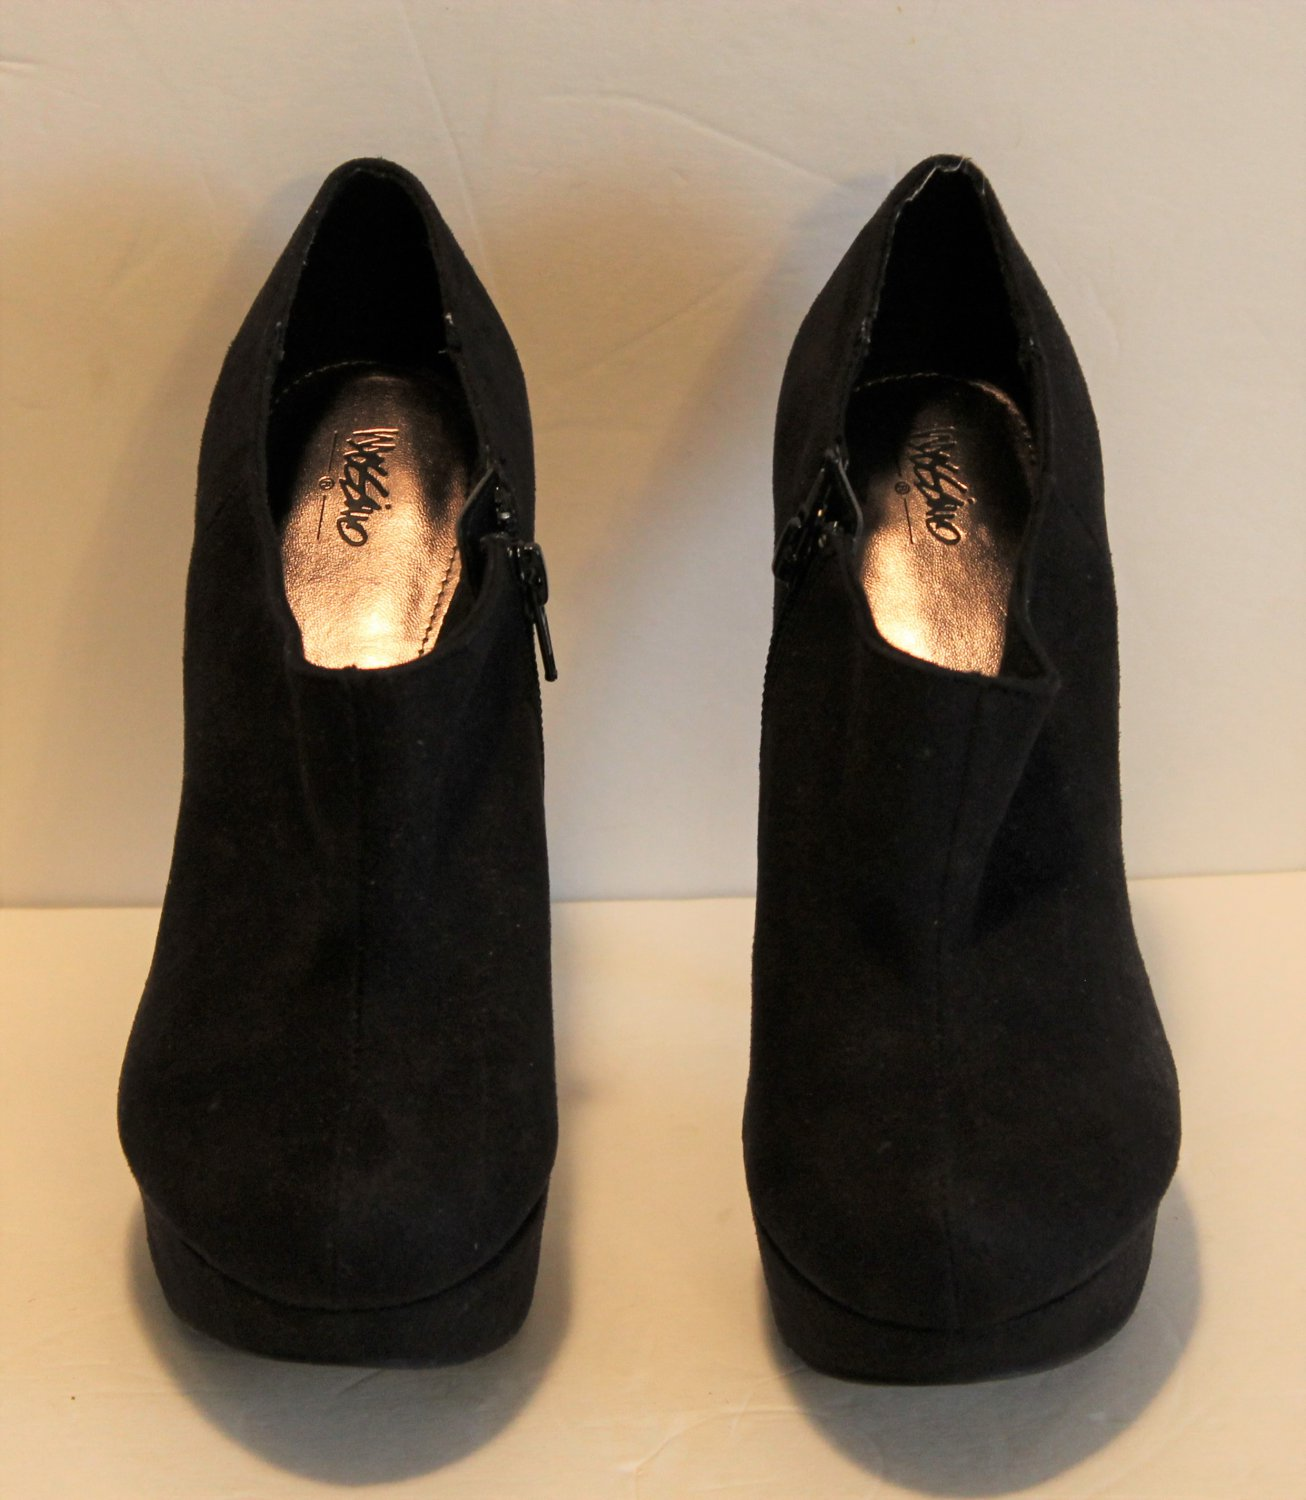 """Mossimo Black Suede Platform Stiletto Booties Shoes High 5"""" Heel Size 7.5"""